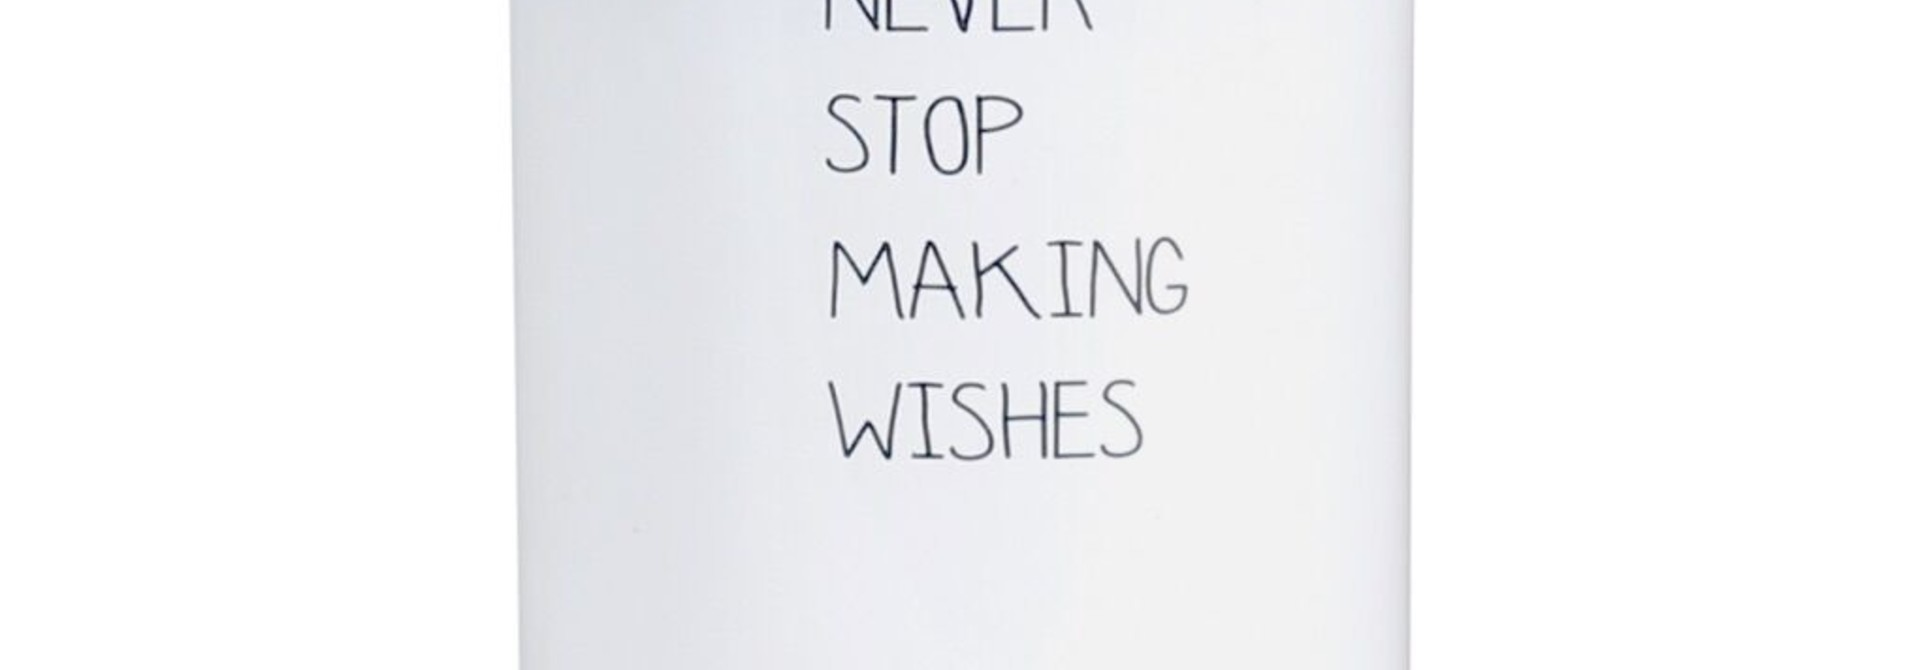 Bio Sojakaars - NEVER STOP MAKING WISHES - Geur FIG'S Delight